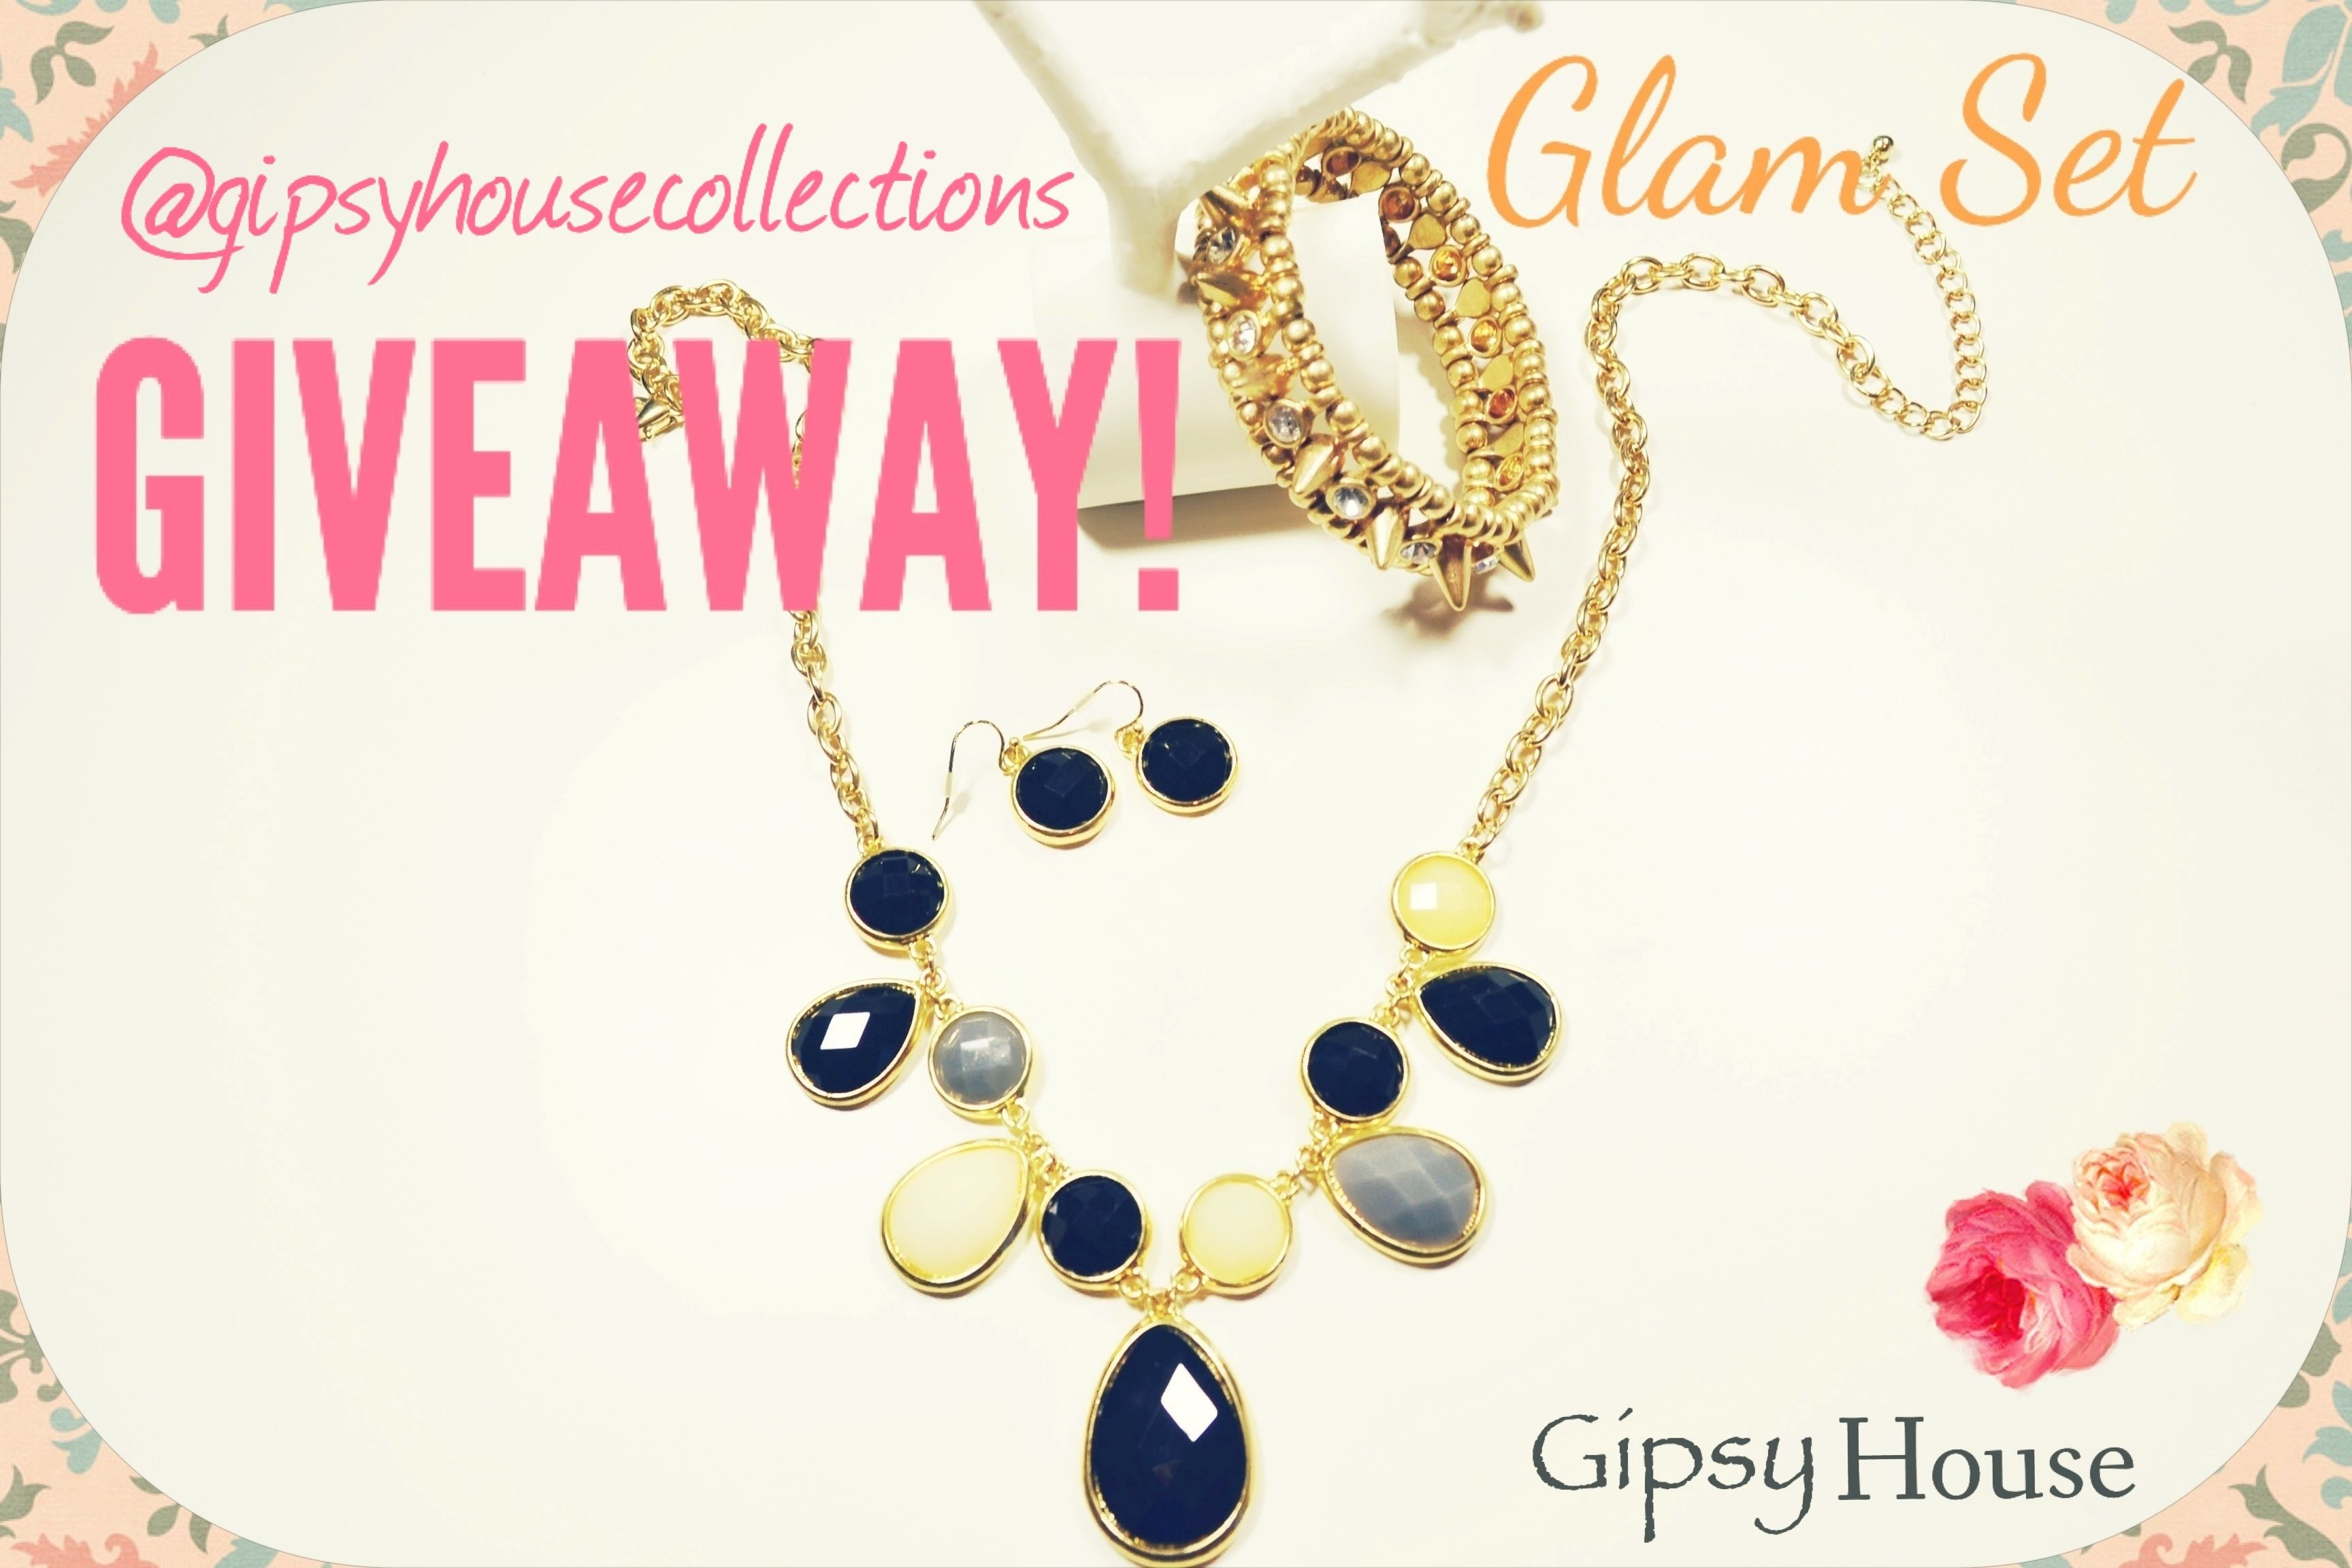 "Hello fans! We'll be having our first ""Instagram GIVEAWAY"" . If you have an Instagram account just follow the instructions and have a chance to win this beautiful Glam Set! Thank you for joining! GHC. (U.S Residents only giveaway ends 09/04/13, Winner will be announced 09/05/13.#fashion#style#jewlery"